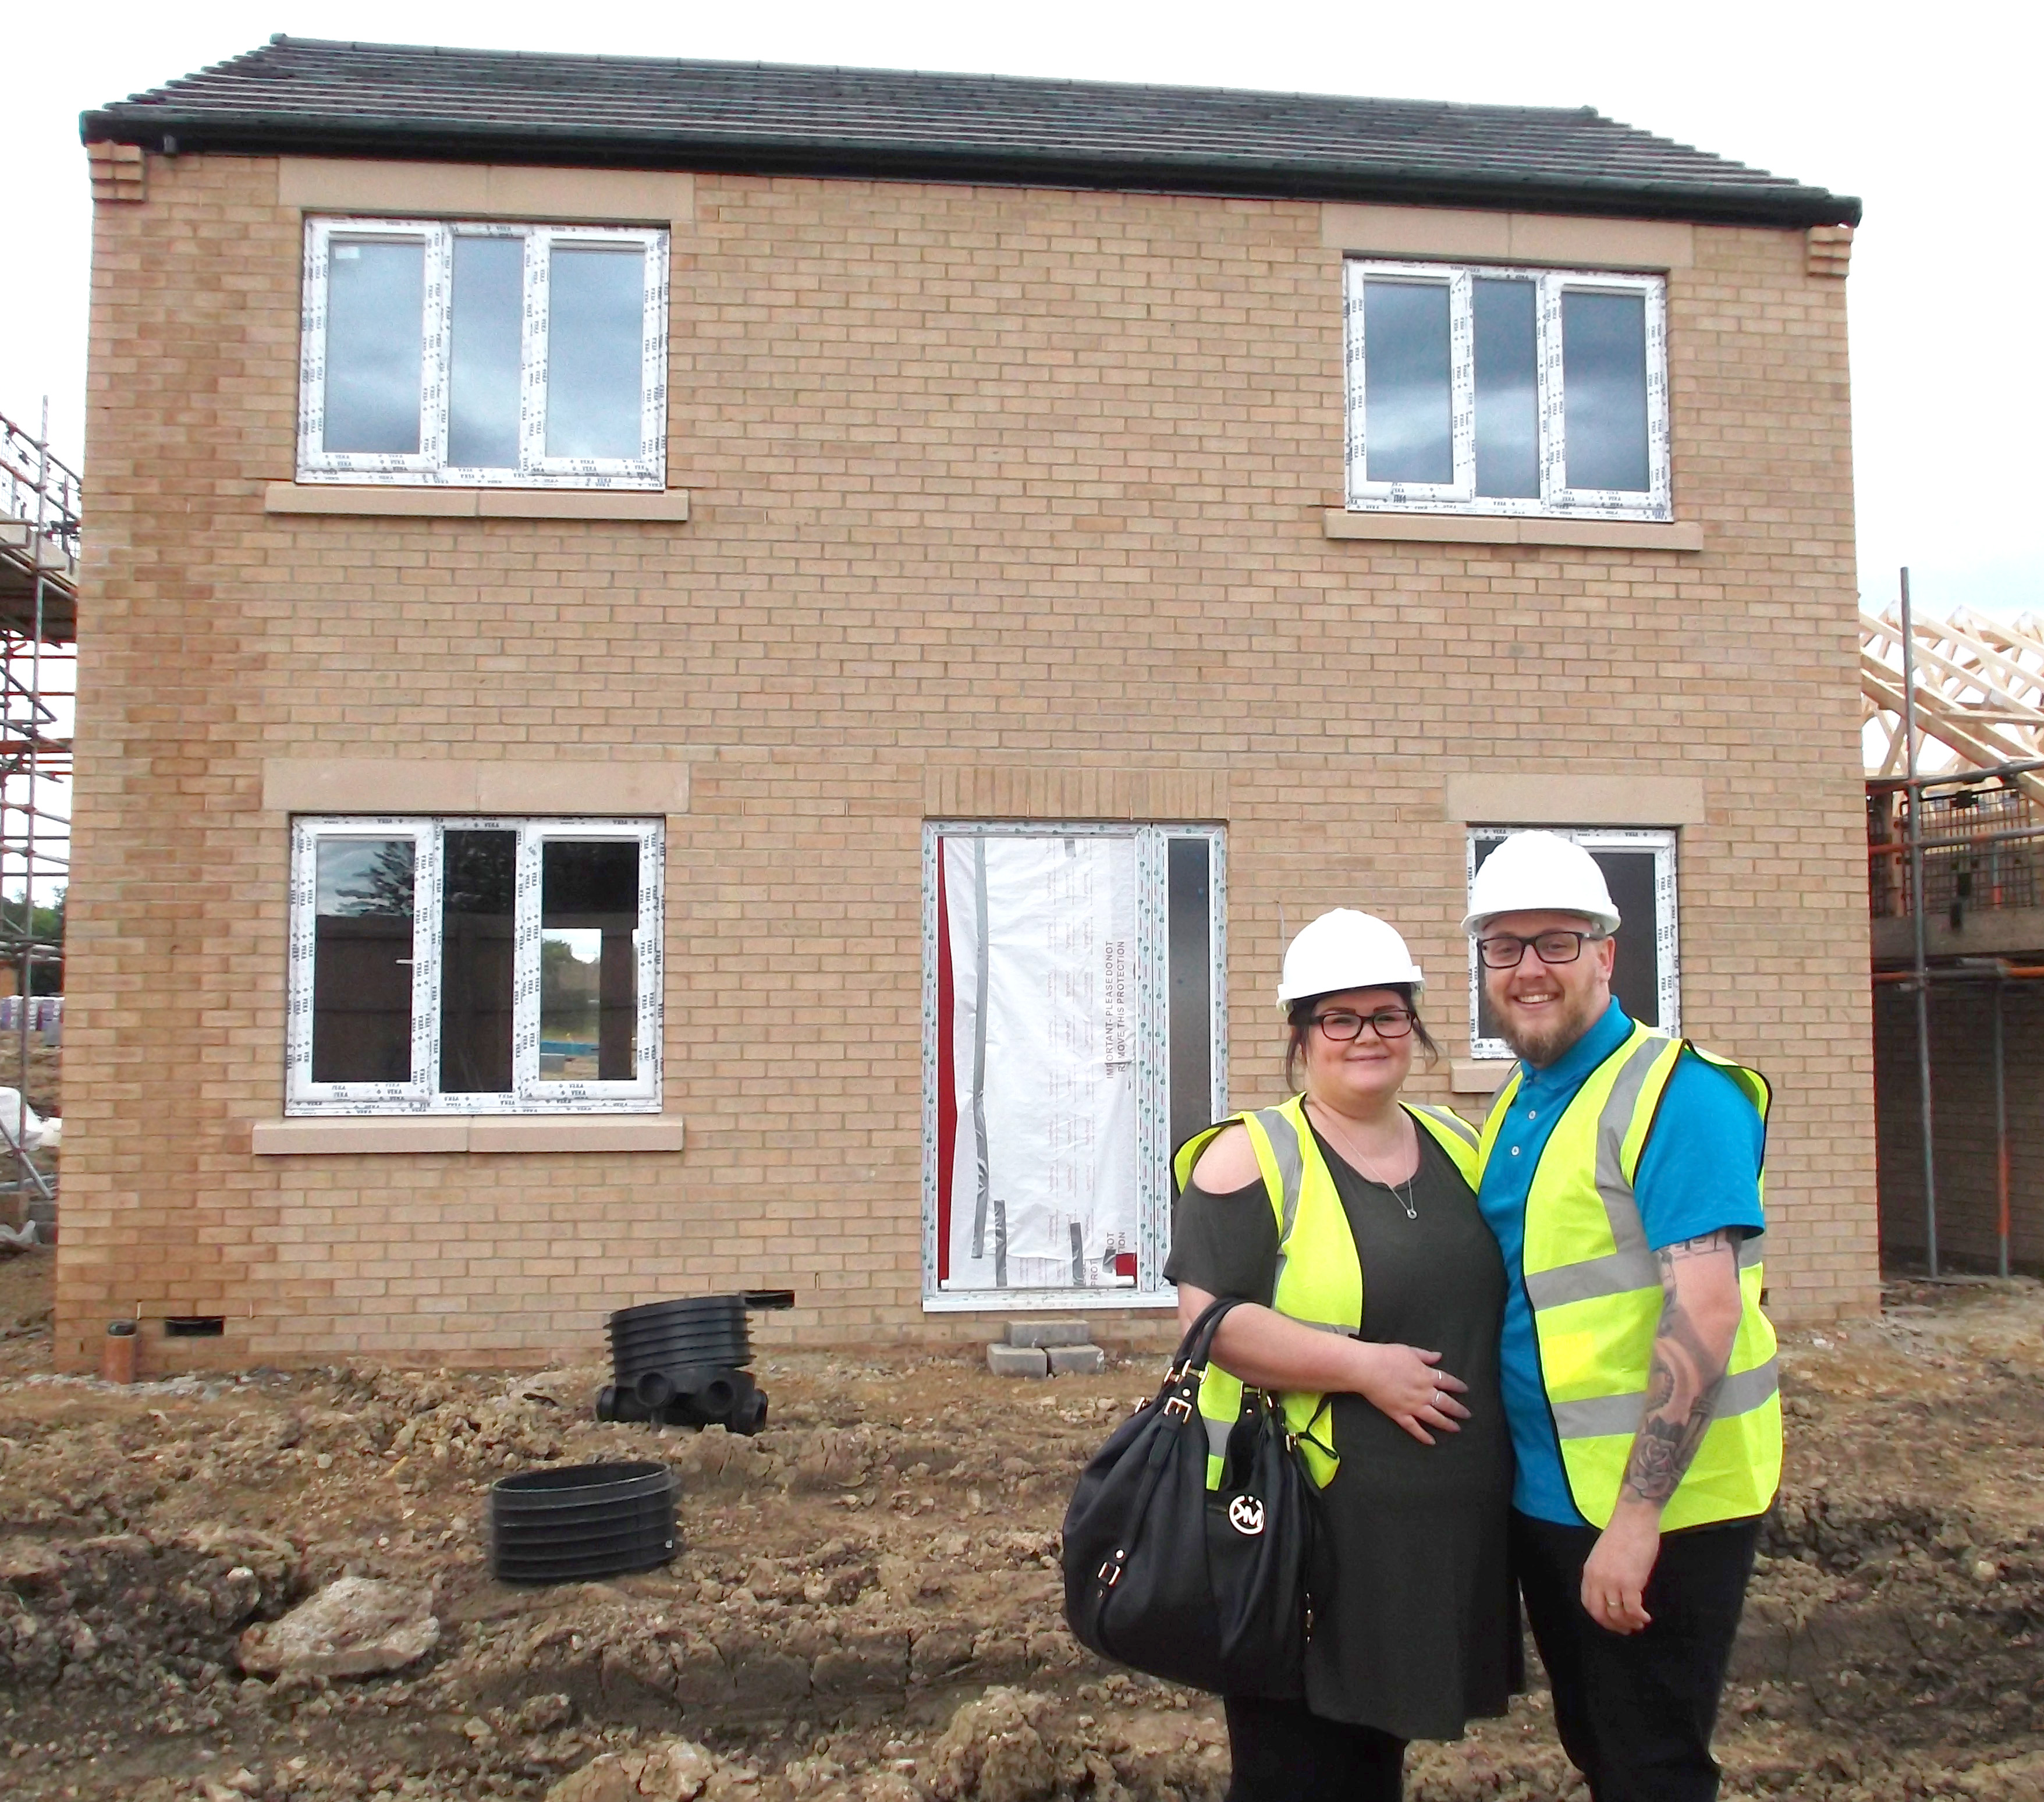 Aycliffe Couple Buy First House Built at New Agnew Site